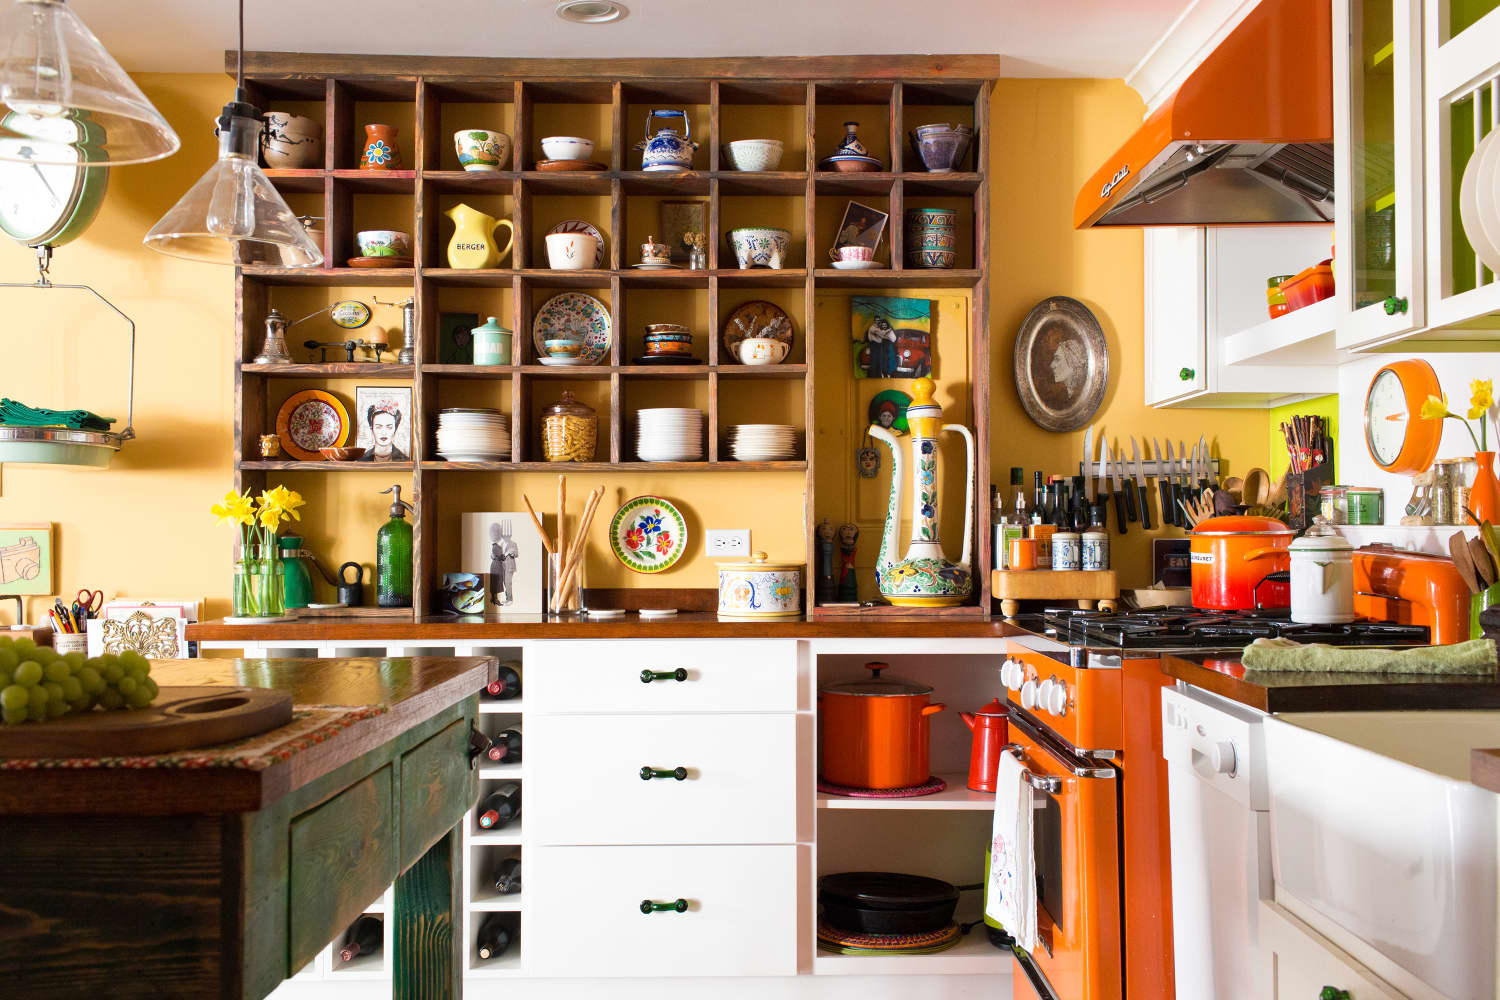 A Kitchen Storage Trend That's a Fresh Update on Floating Open Shelving